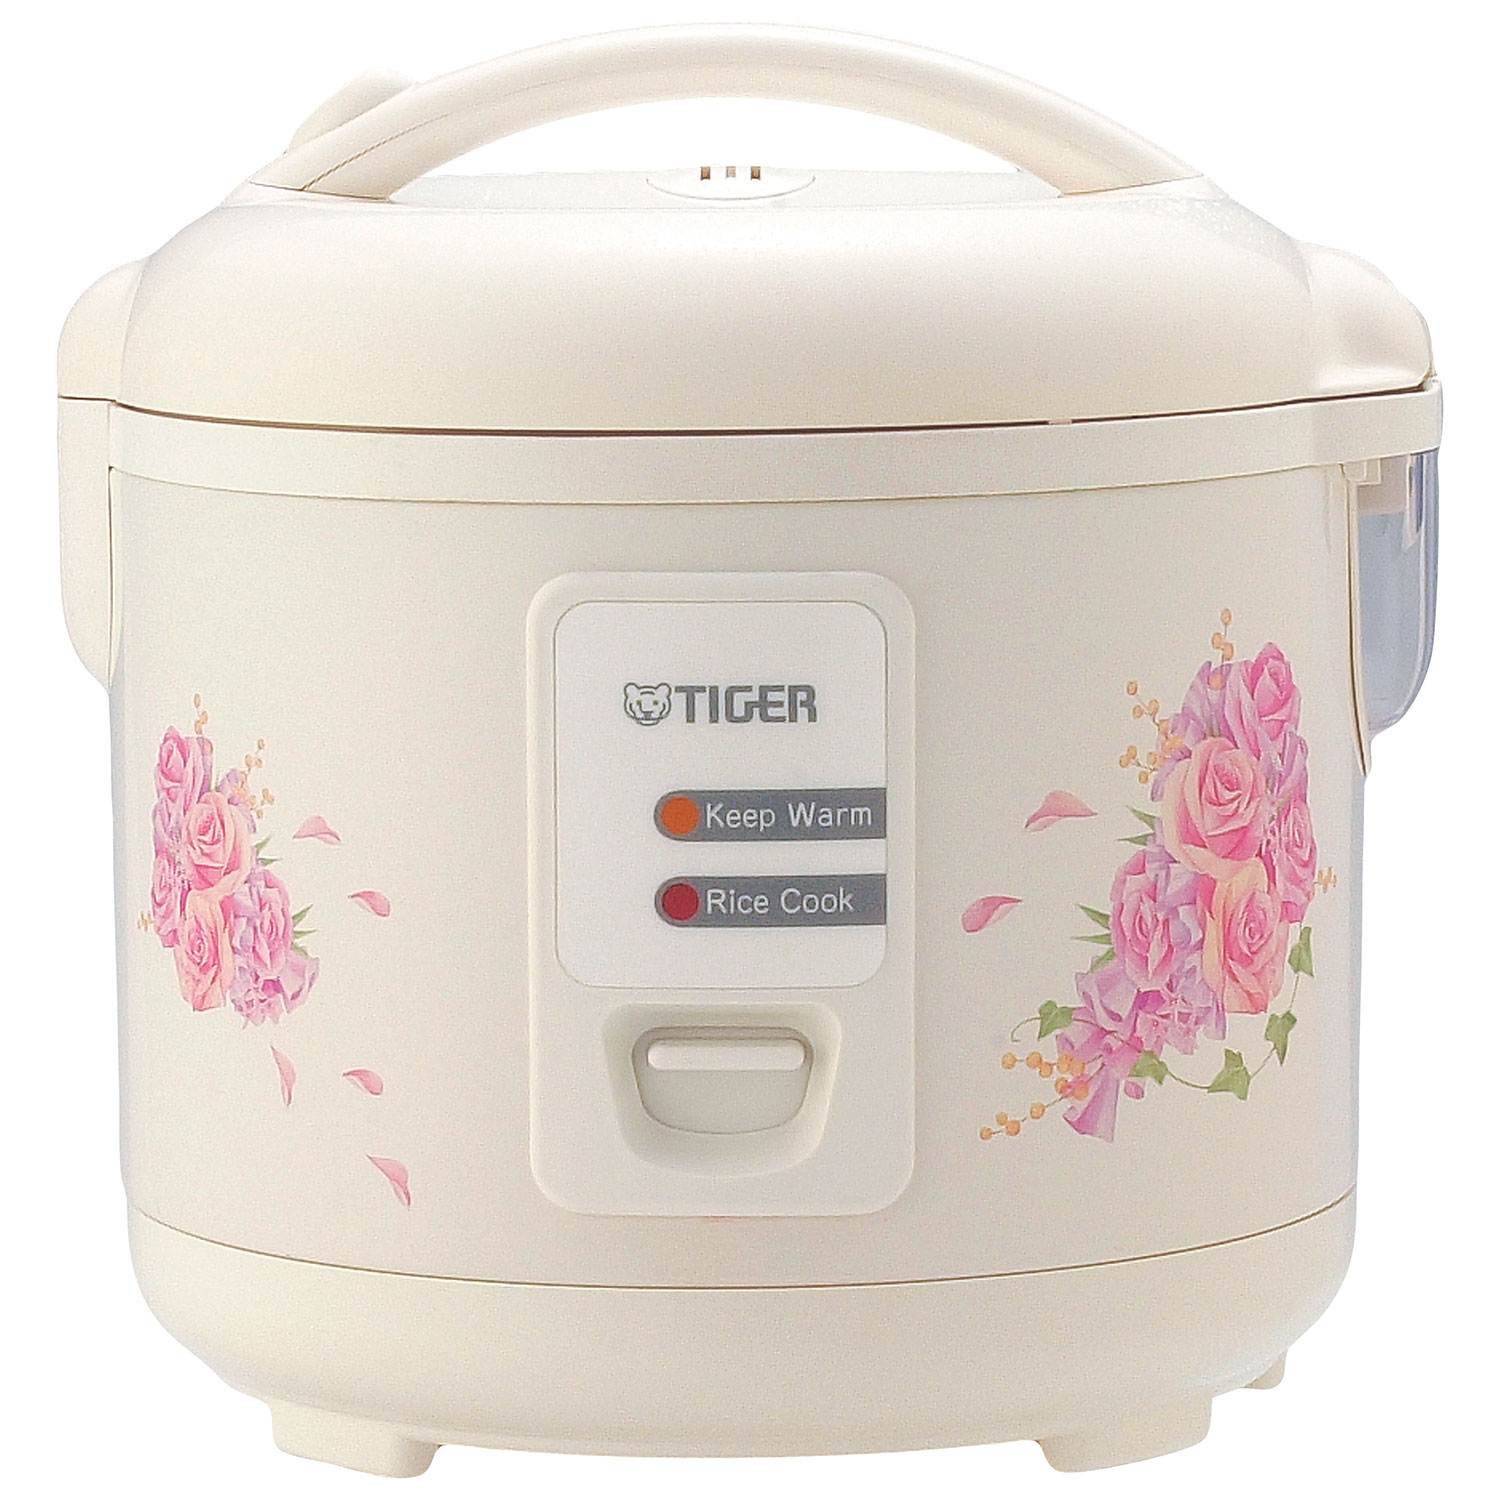 Tiger Electric Rice Cooker 55 Cup Cookers Best Buy Canada